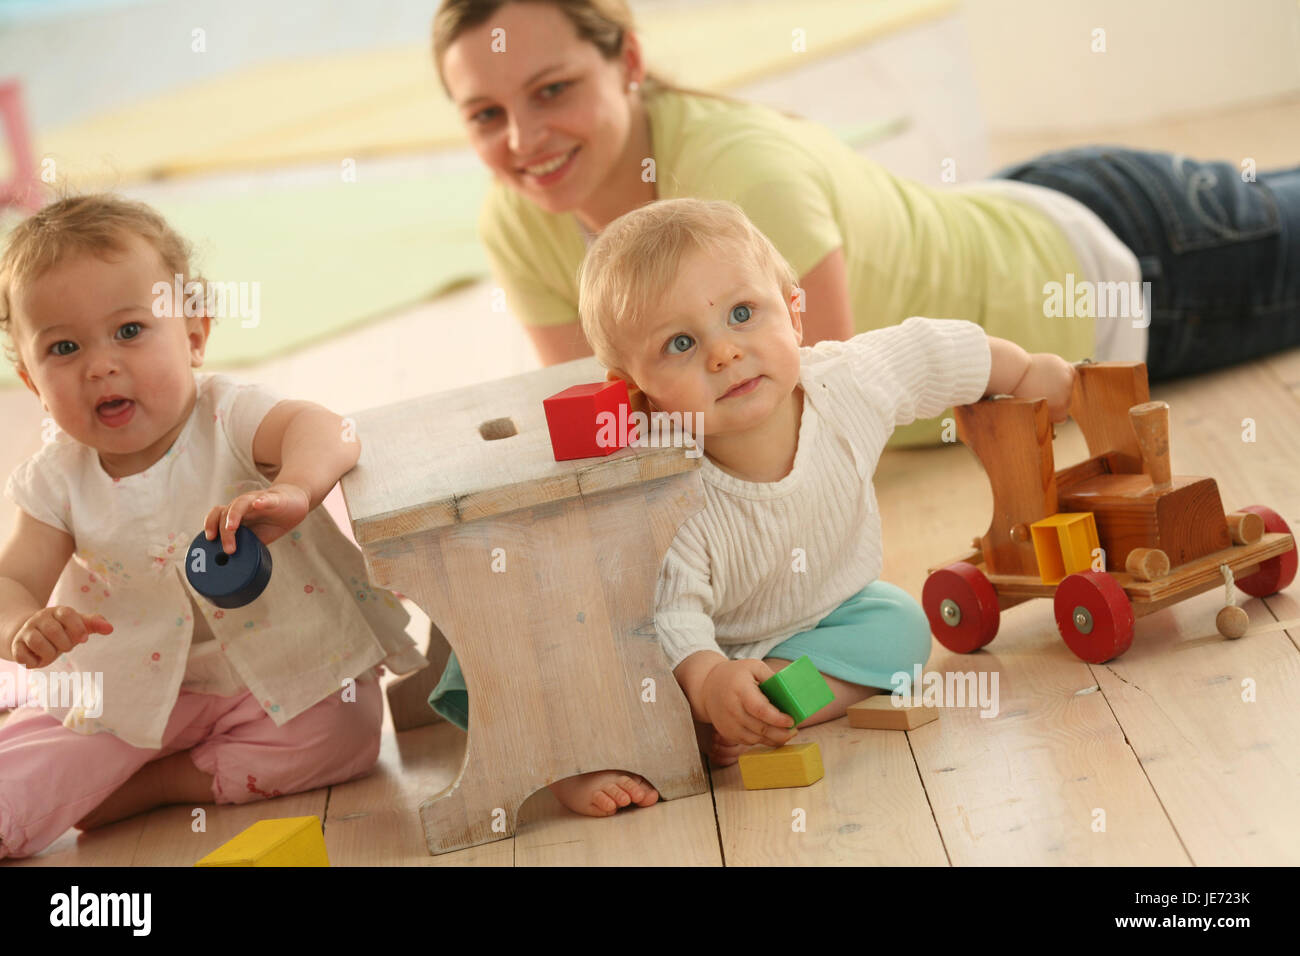 Babies, 9 months, mother, play, wooden toys, toys, dress, blond, discoveries, friends, reach, group, Indoor, boy, - Stock Image